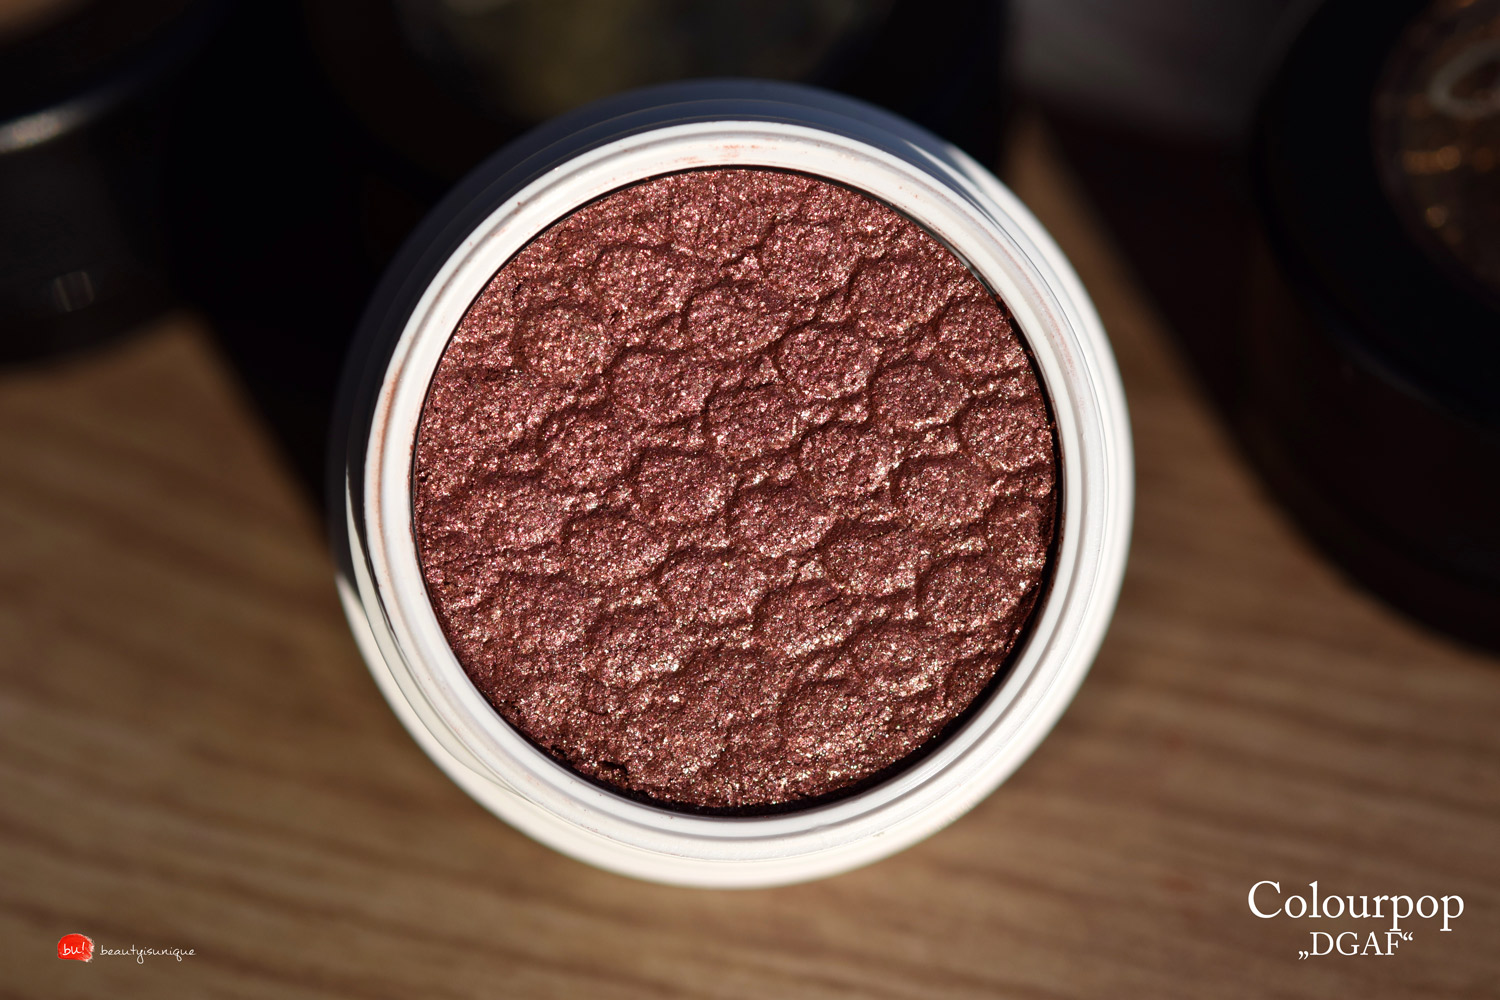 Colourpop-DGAF-swatch